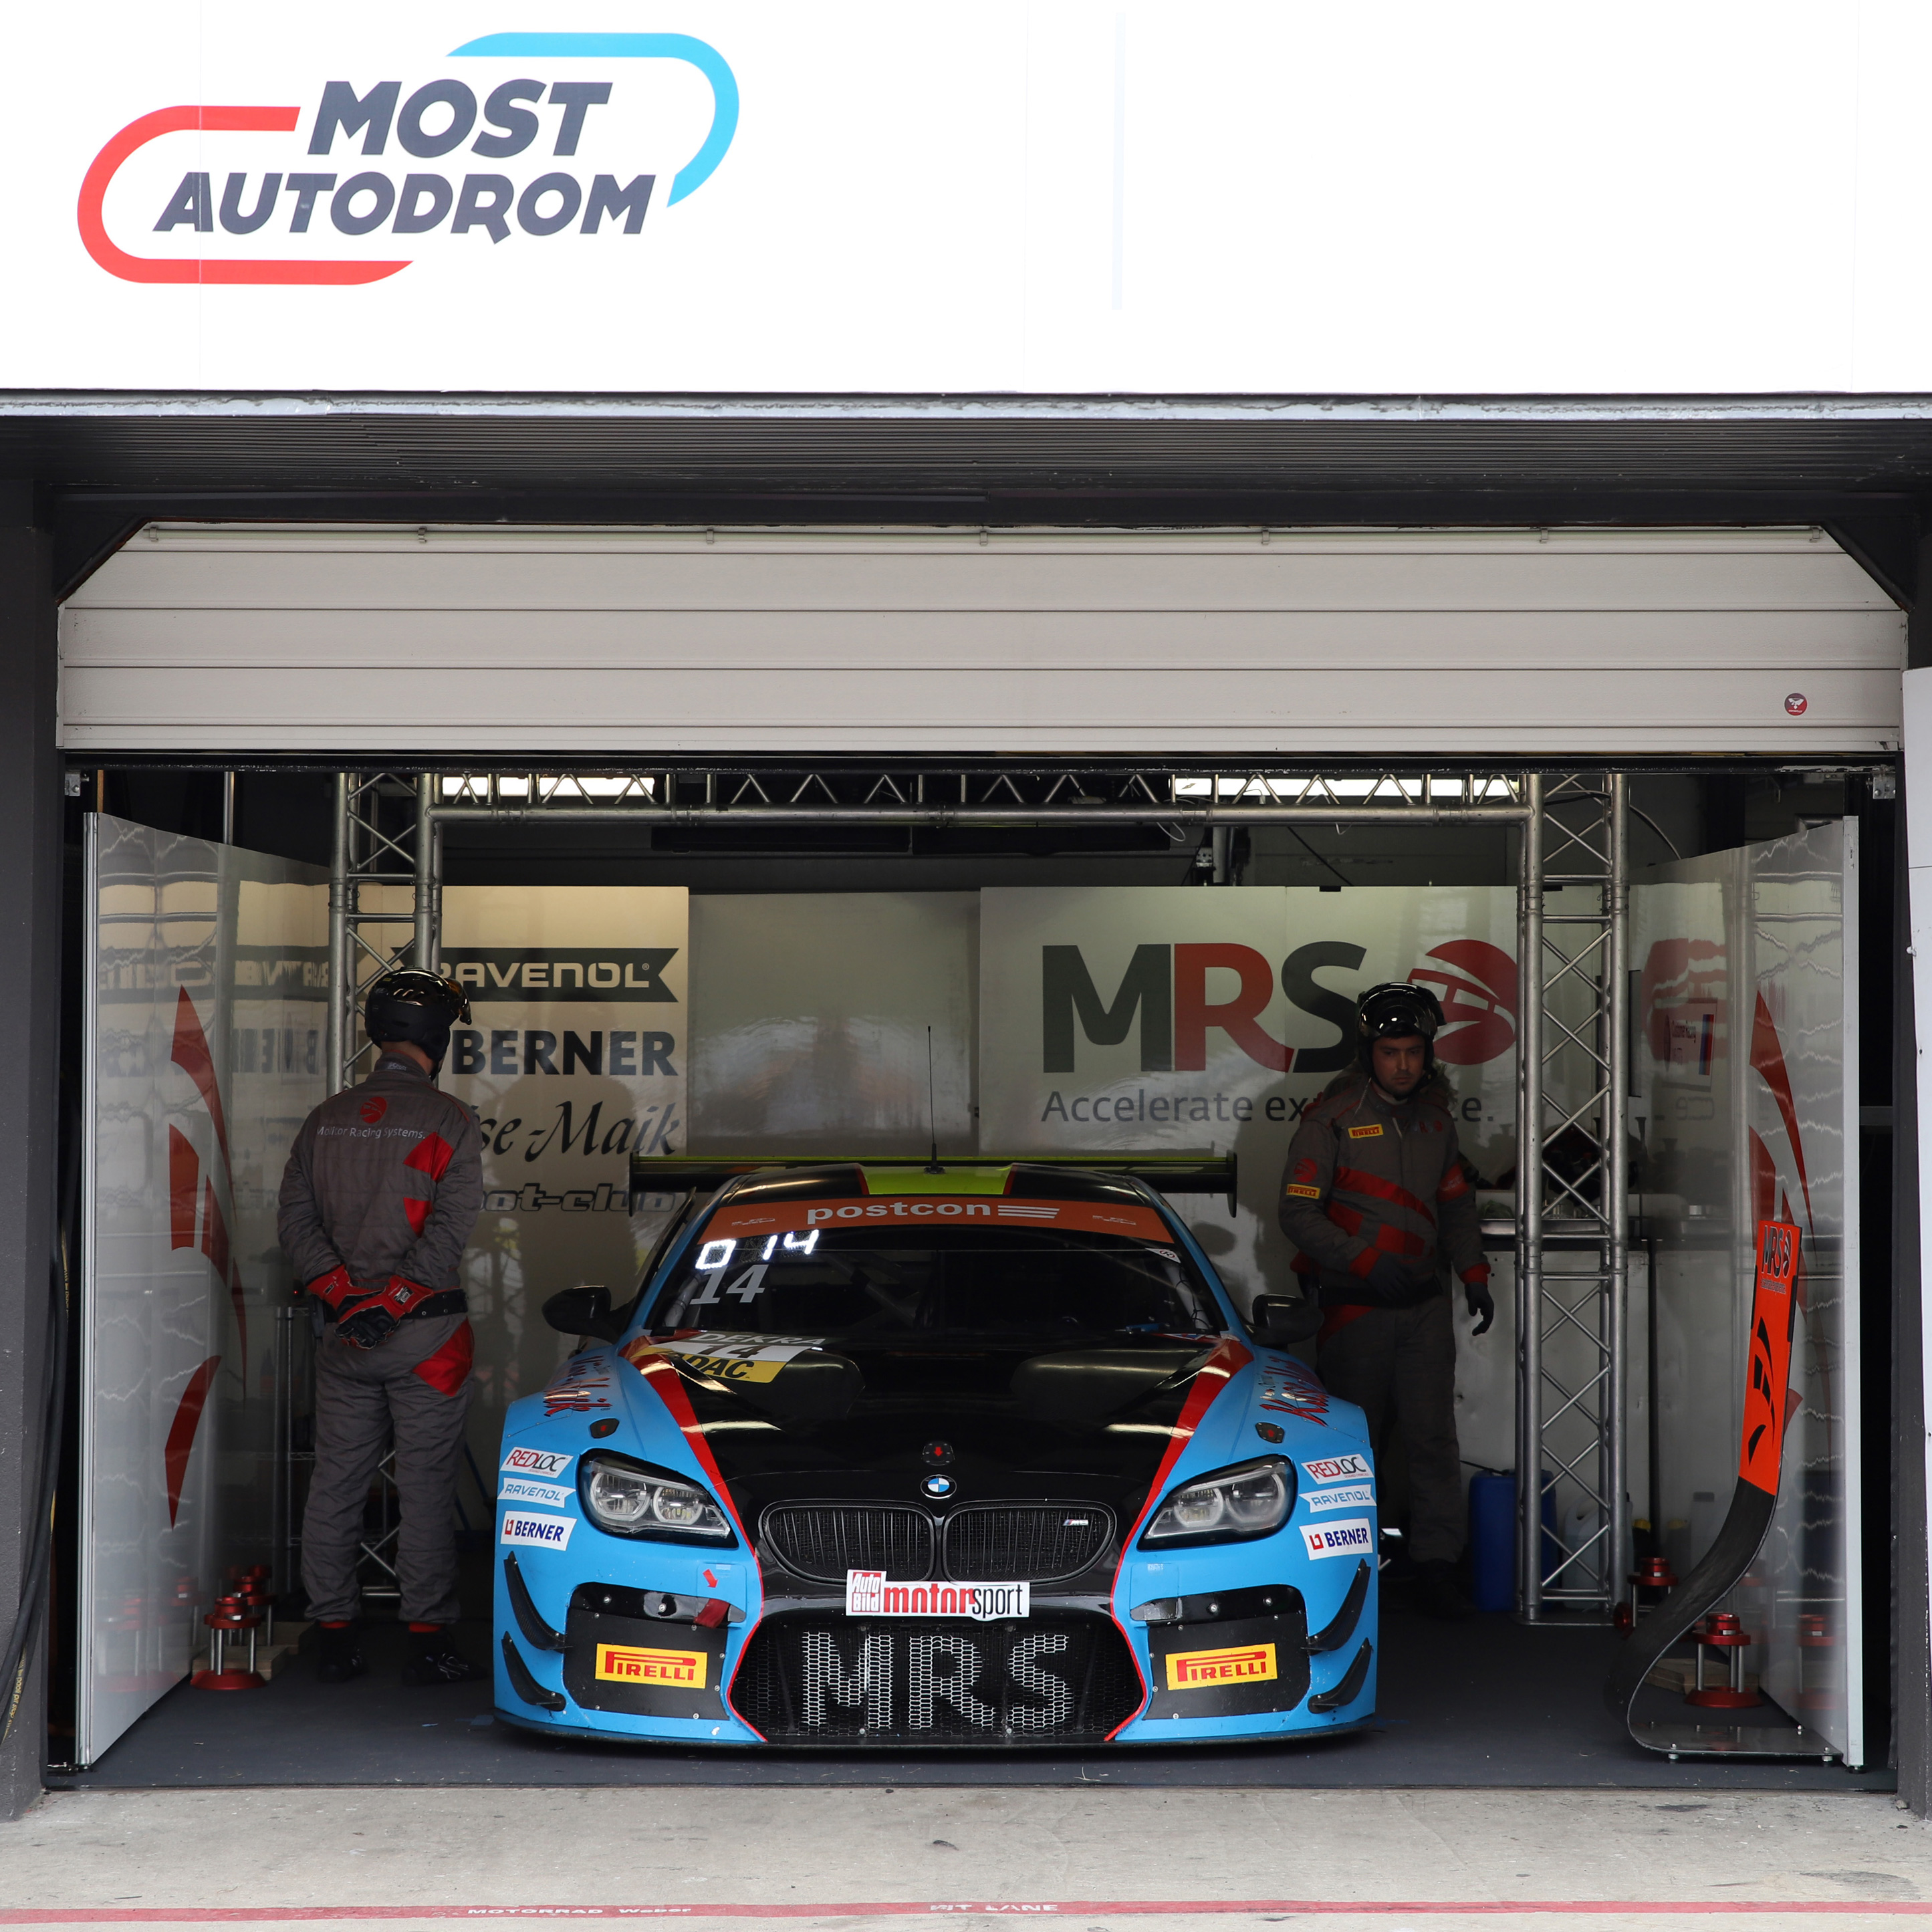 mrs-bmw-m6-gt3-adac-gtm-most-2019.05-02 PAD PIC